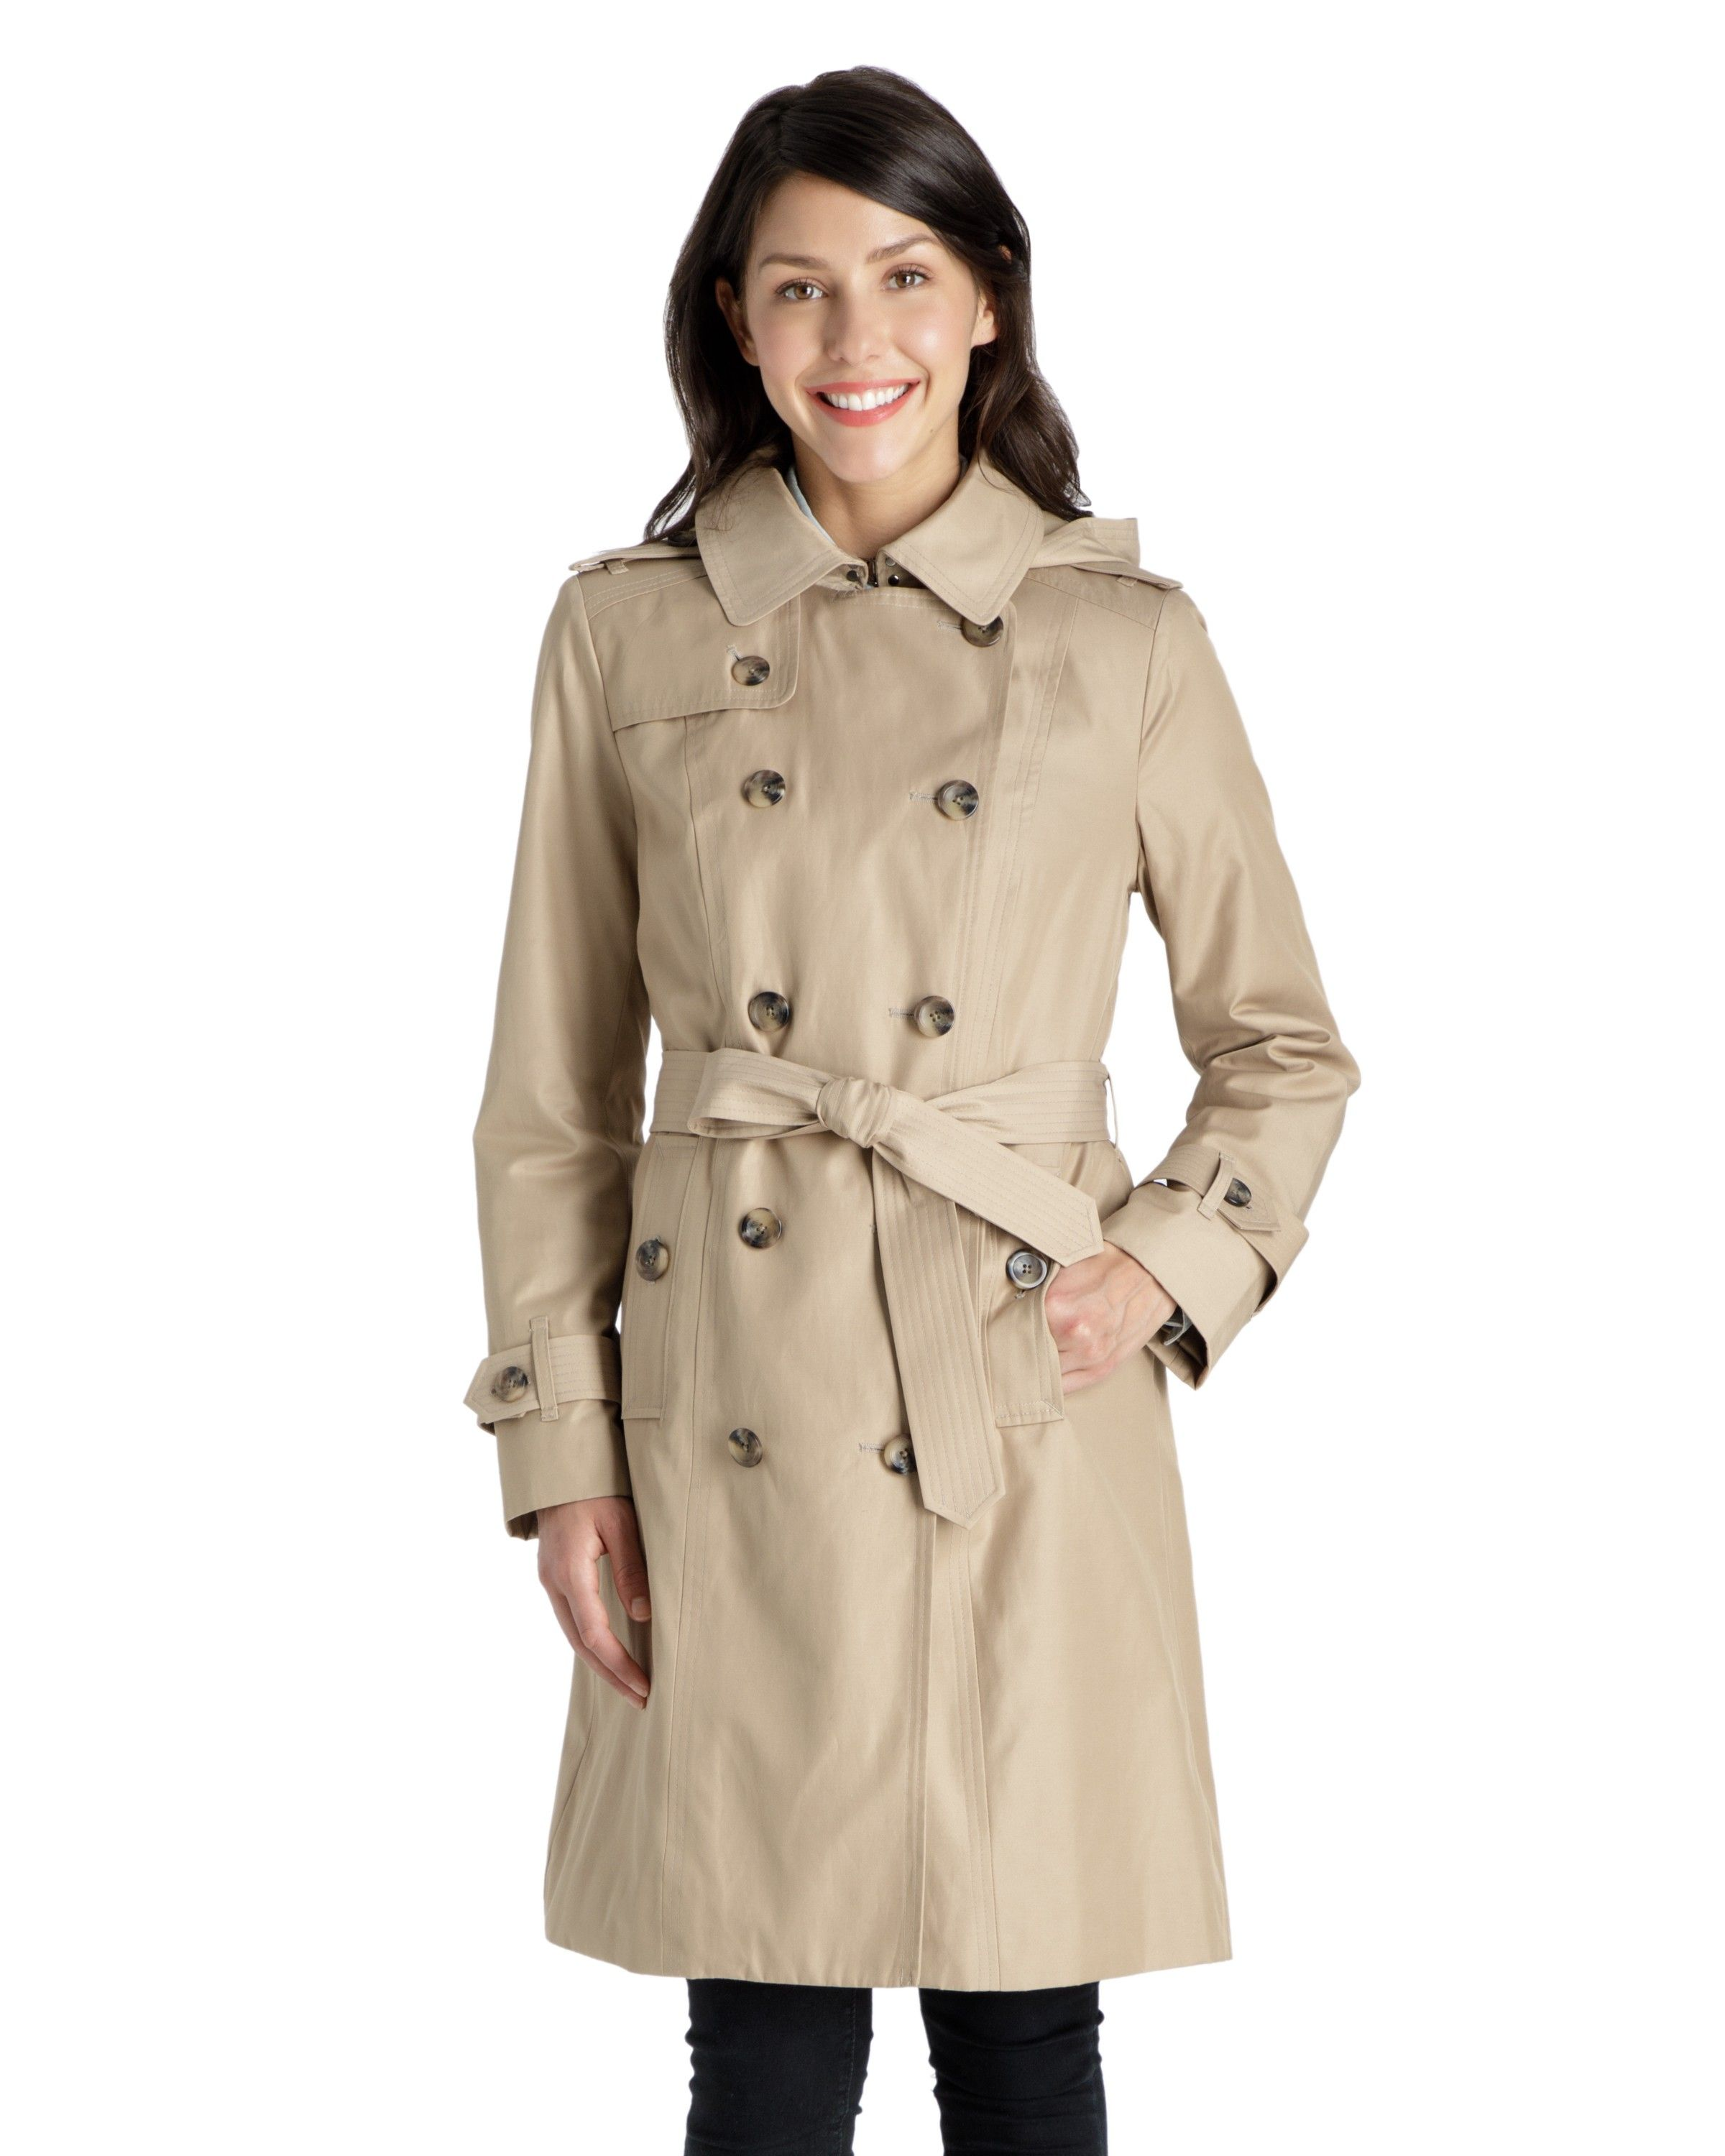 22fd0ea8e4 Ryan Double-Breasted Trench Coat with Removable hood - Women's Raincoats -  Coats for Women - Women